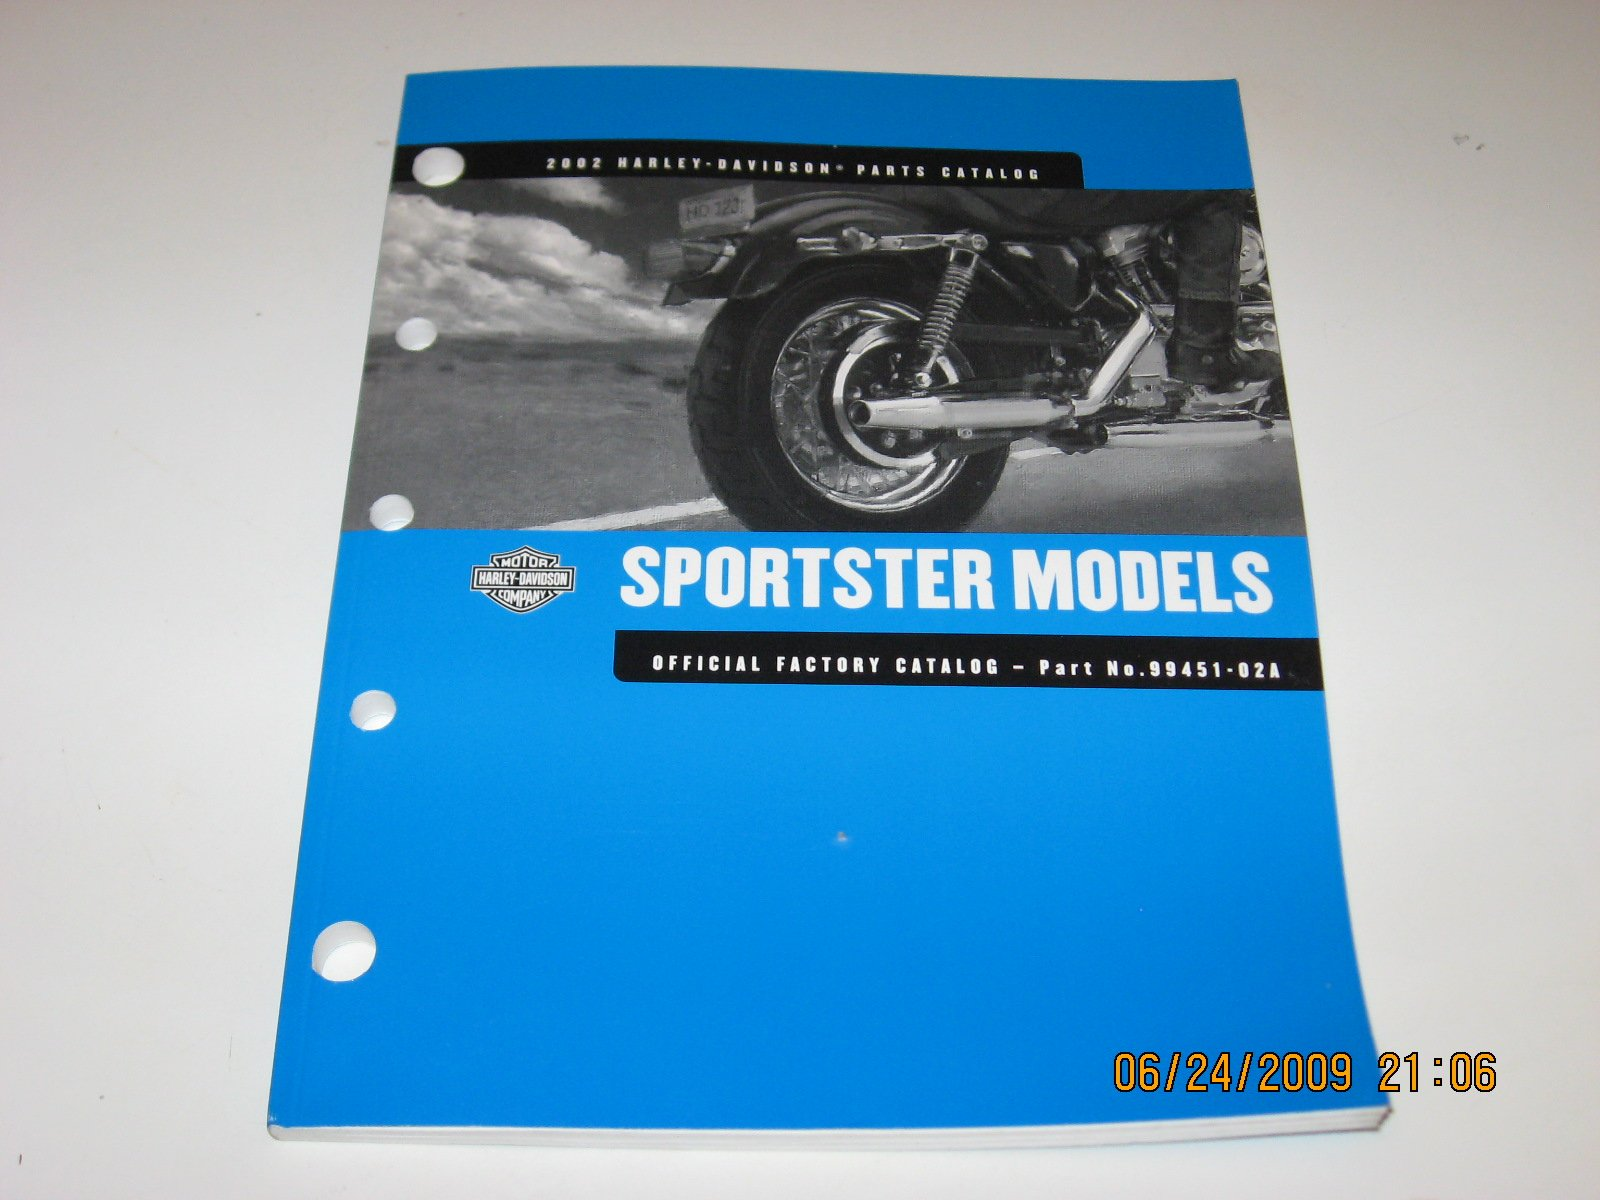 2002 harley-davidson service manual sportster models part No. 99484-02:  Harley-Davidson Motor Company: Amazon.com: Books